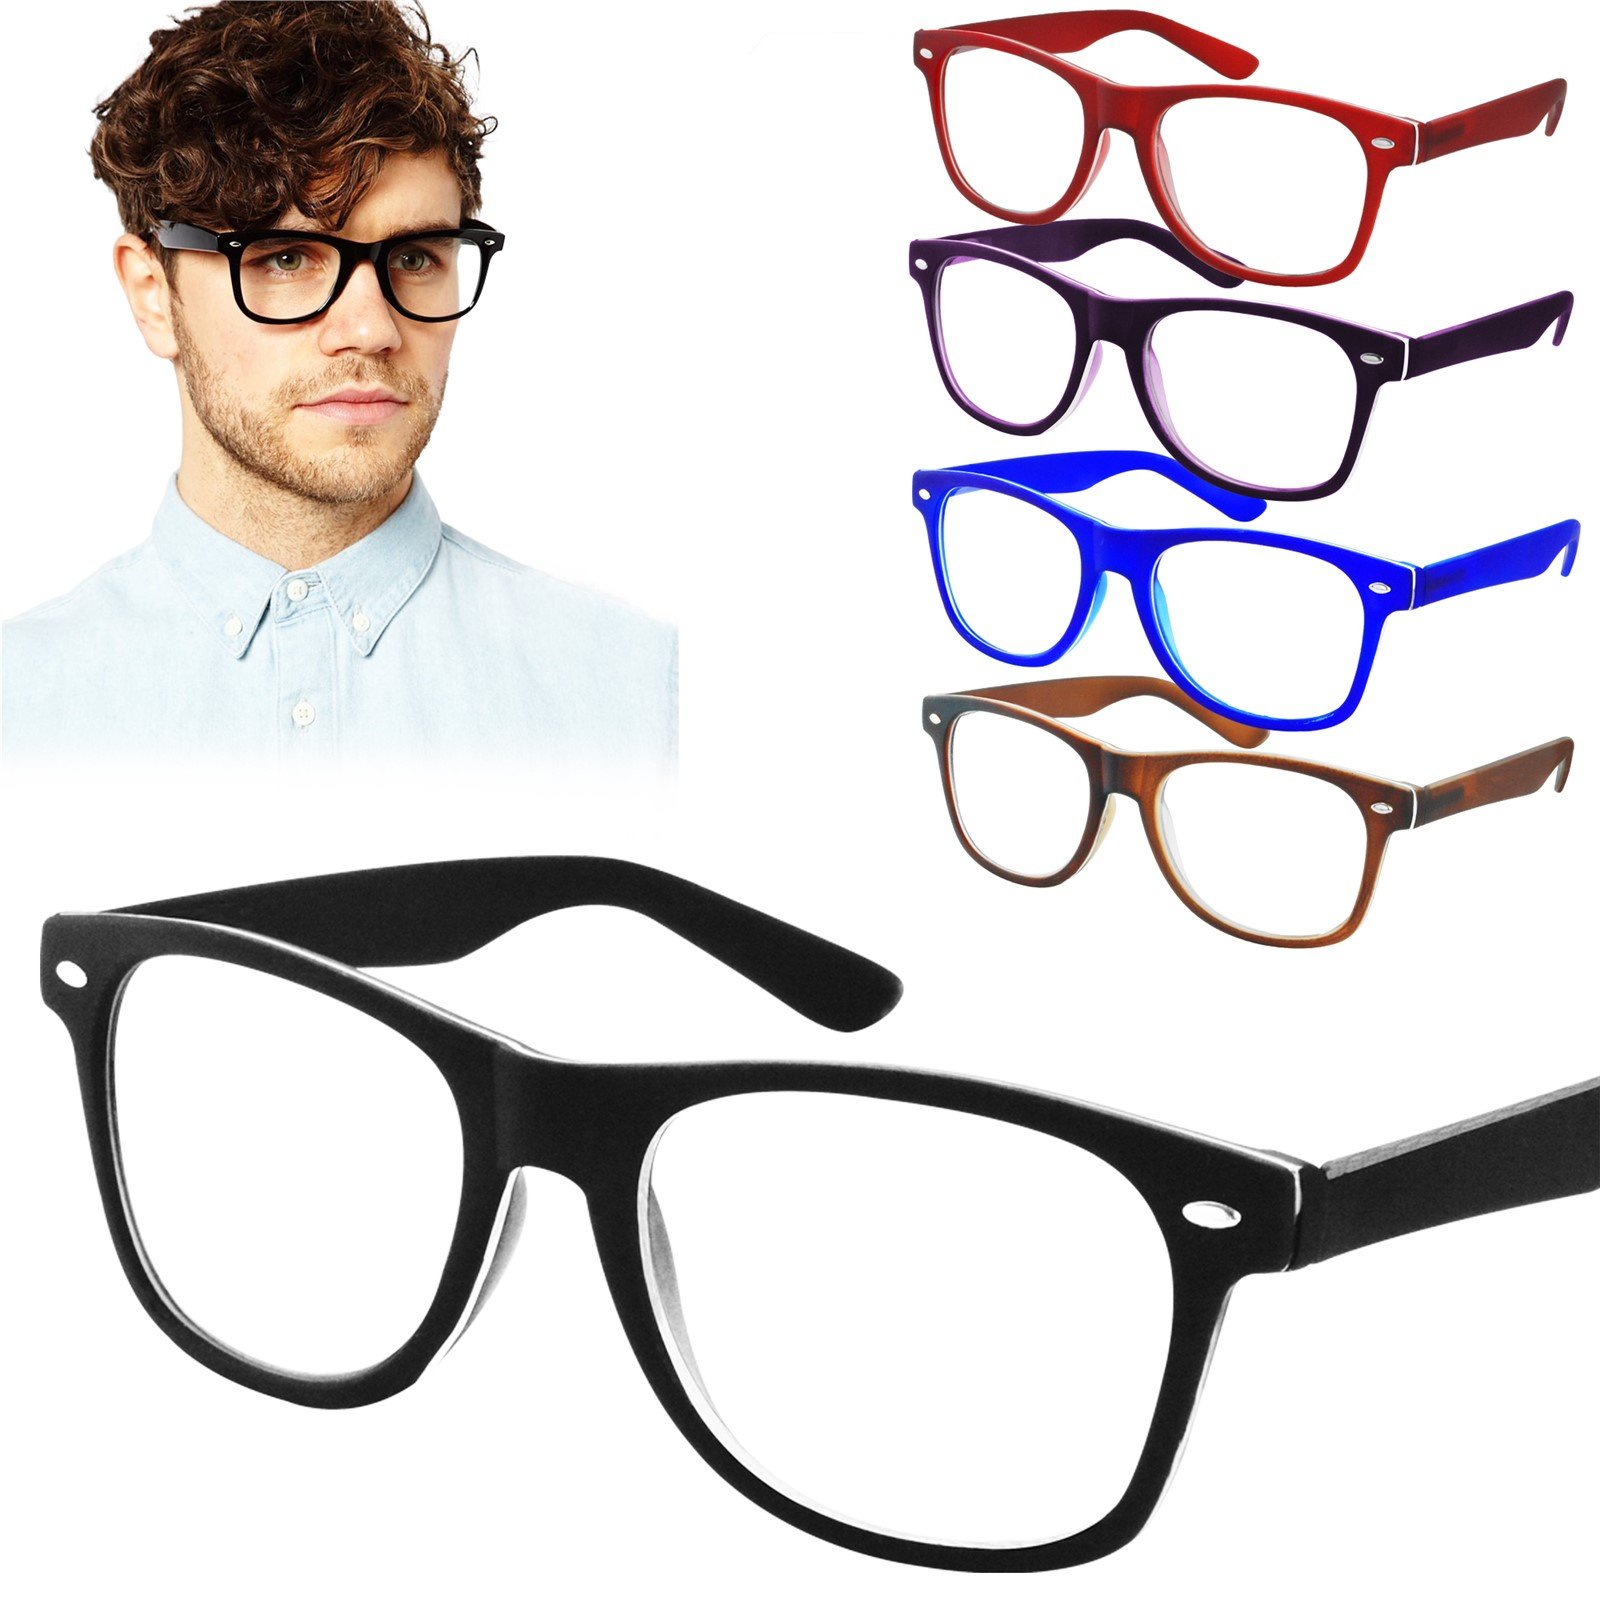 9b6b4b1794a Details about Reading Glasses +1.0 +3.0 Unisex Wayfarer Trendy Designer  Spring Men Women